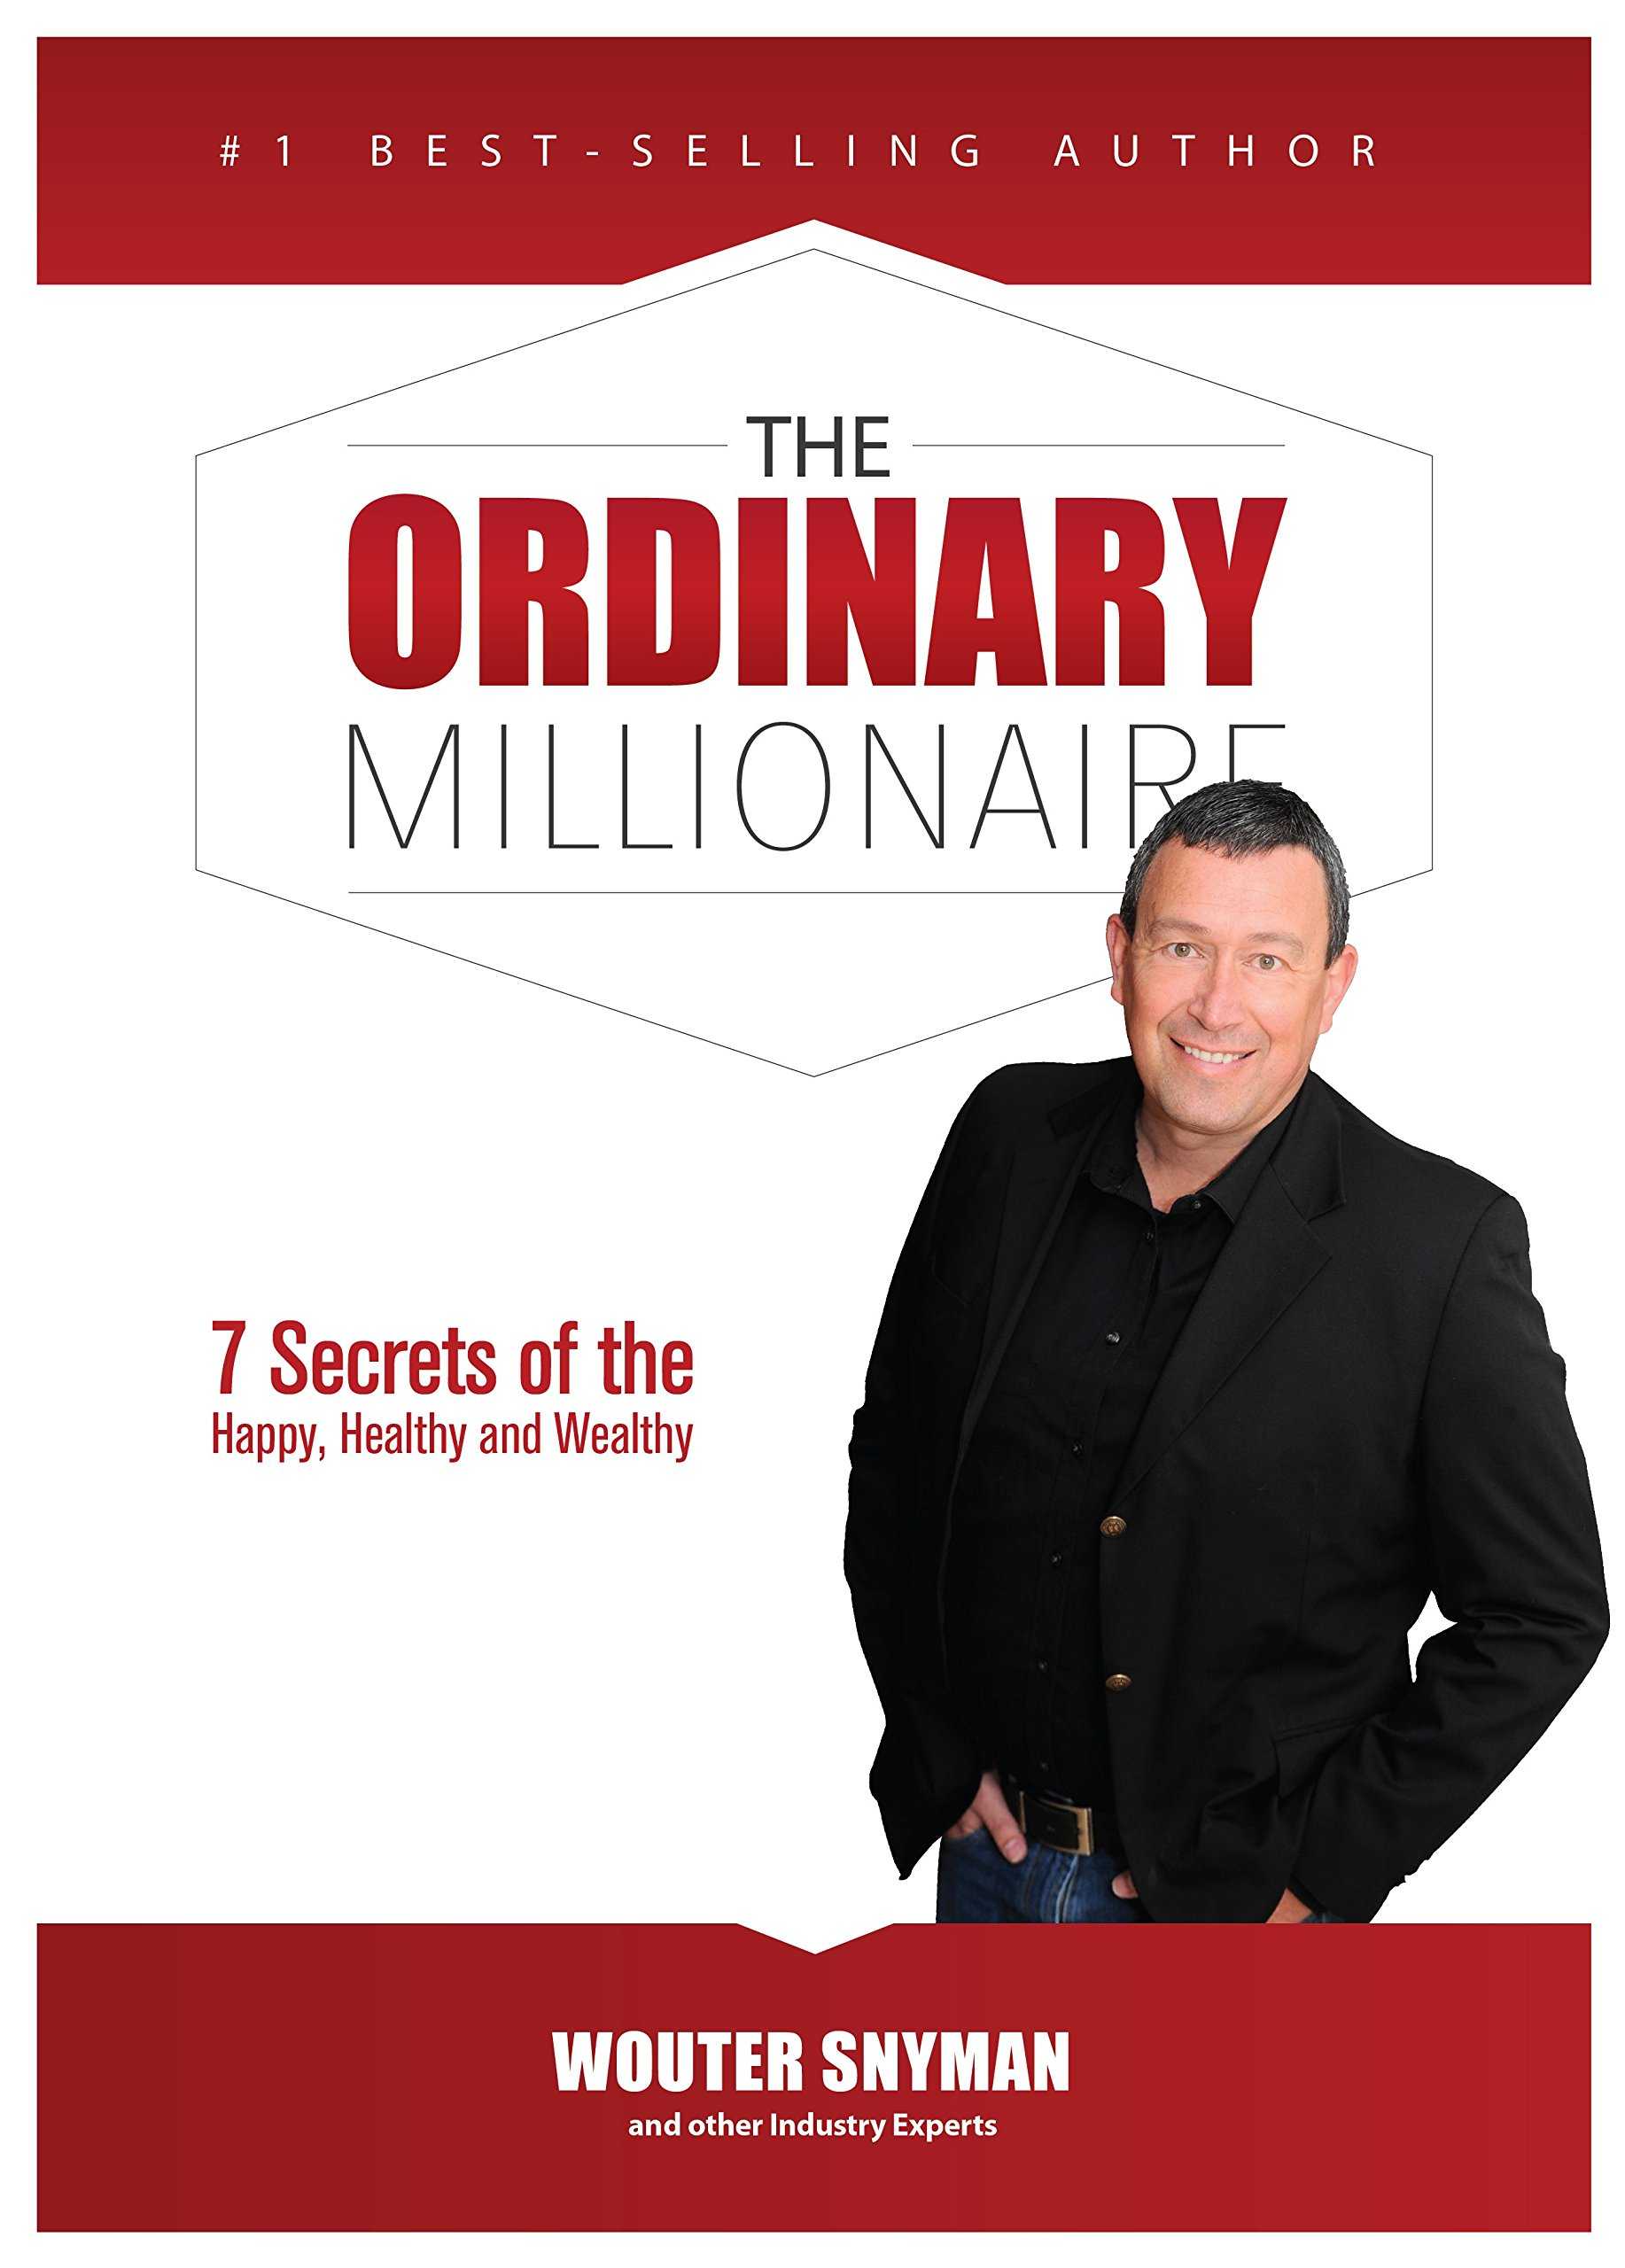 The Ordinary Millionaire: 7 Secrets of the Happy, Healthy and Wealthy